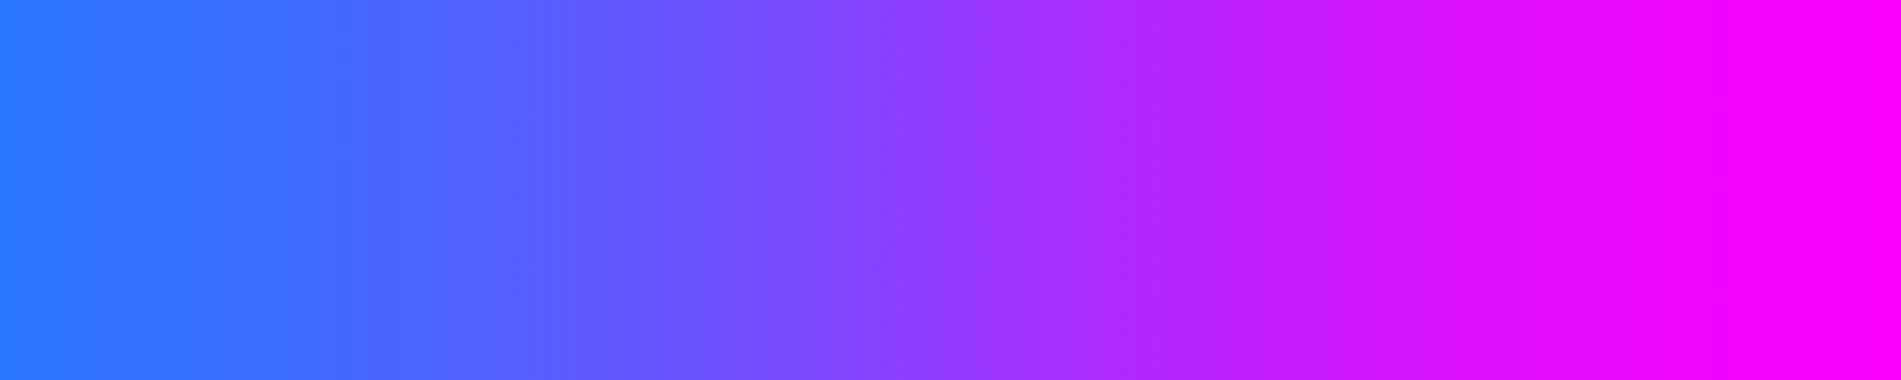 Blue to Pink.png